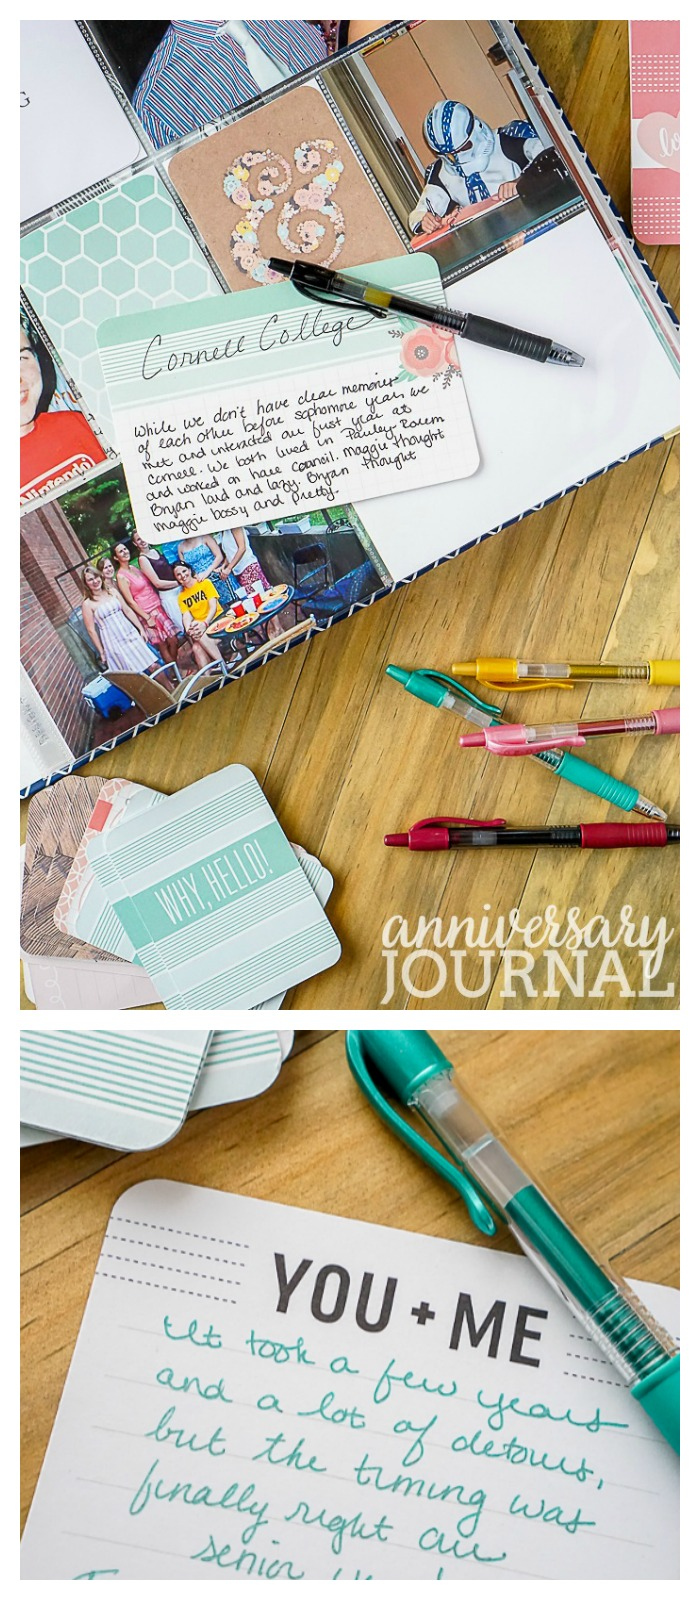 DIY Anniversary Journal - Remember life's important moments and details with a simple but crafty and photo centered relationship album.   The Love Nerds AD #DoYouG2